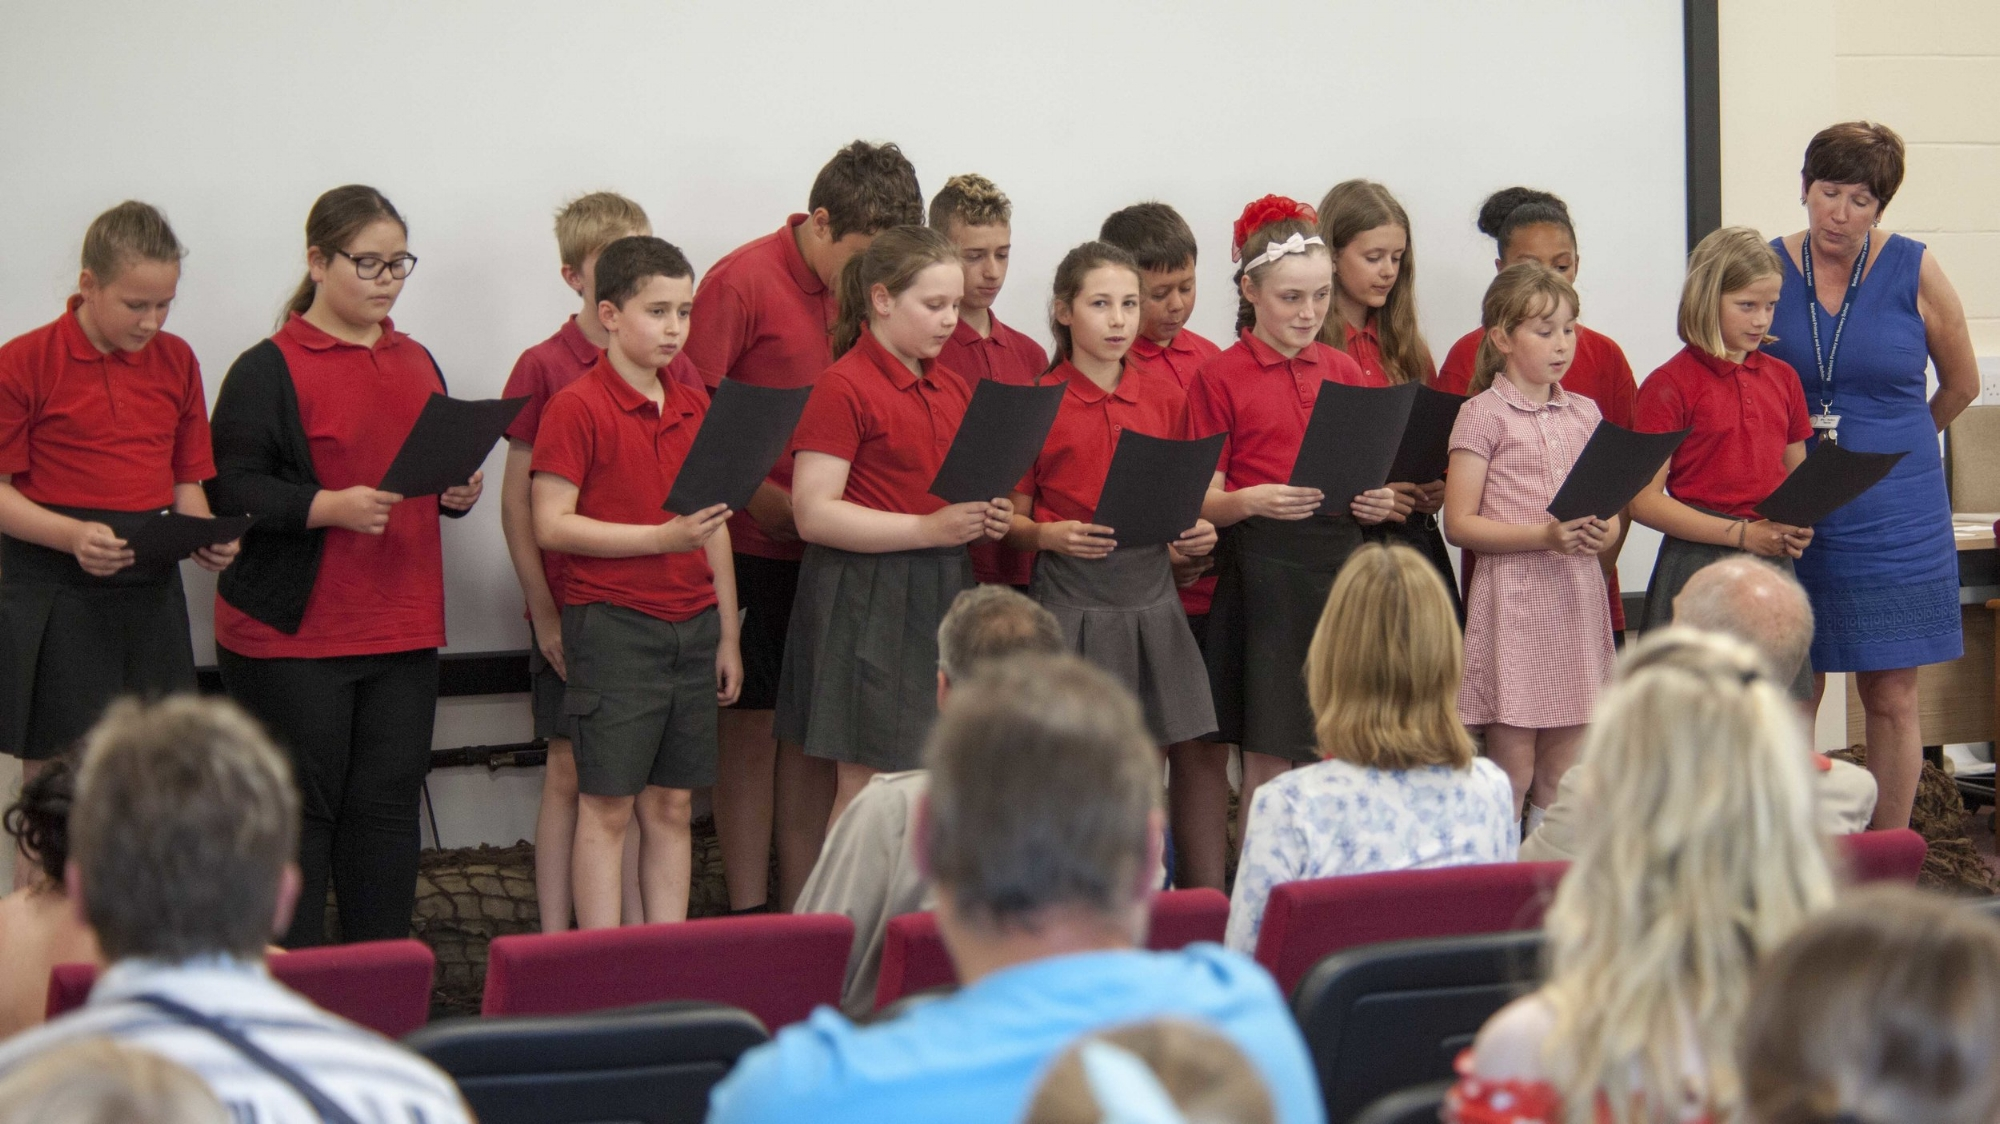 Pupils from Bellefield Primary School Performing at Warminster Garrison